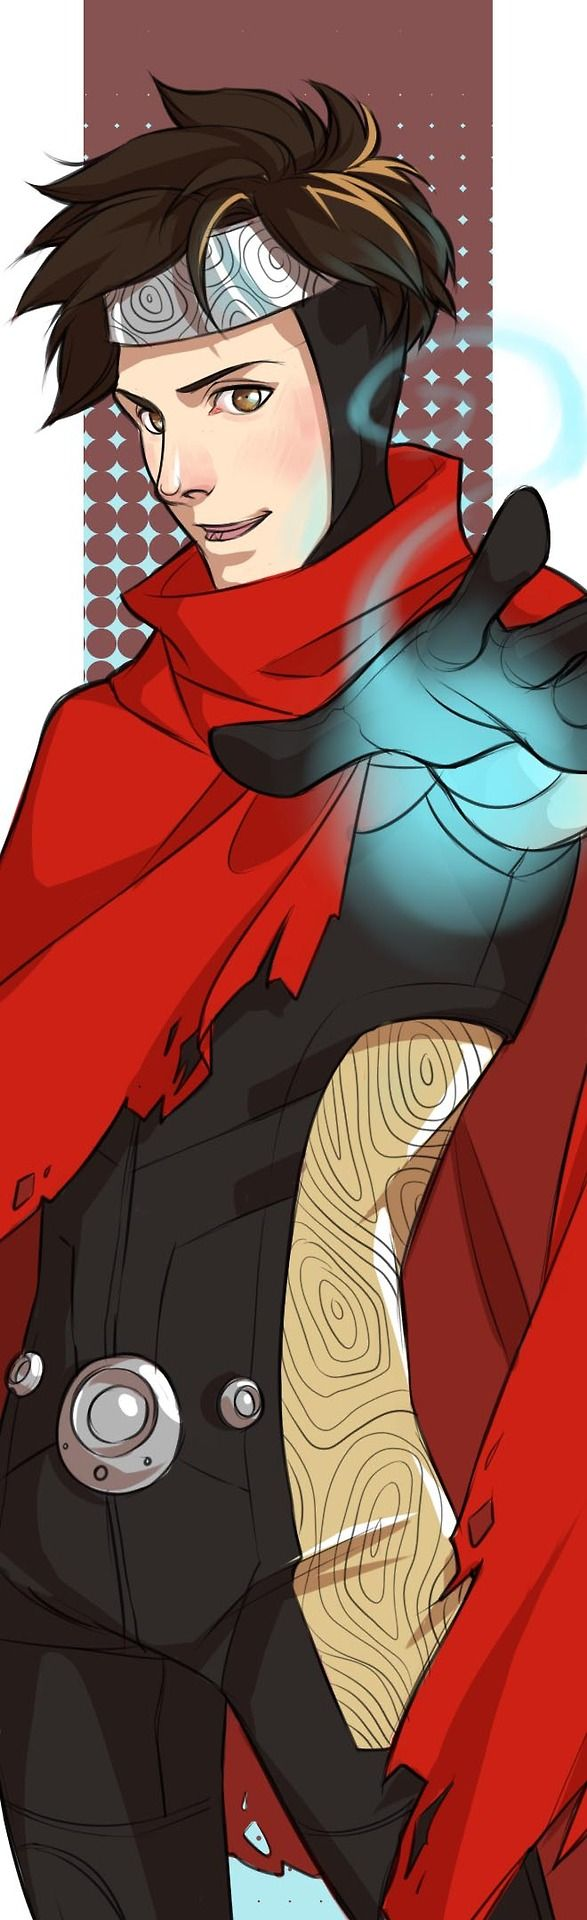 the art of doro | Young Avengers bookmarks